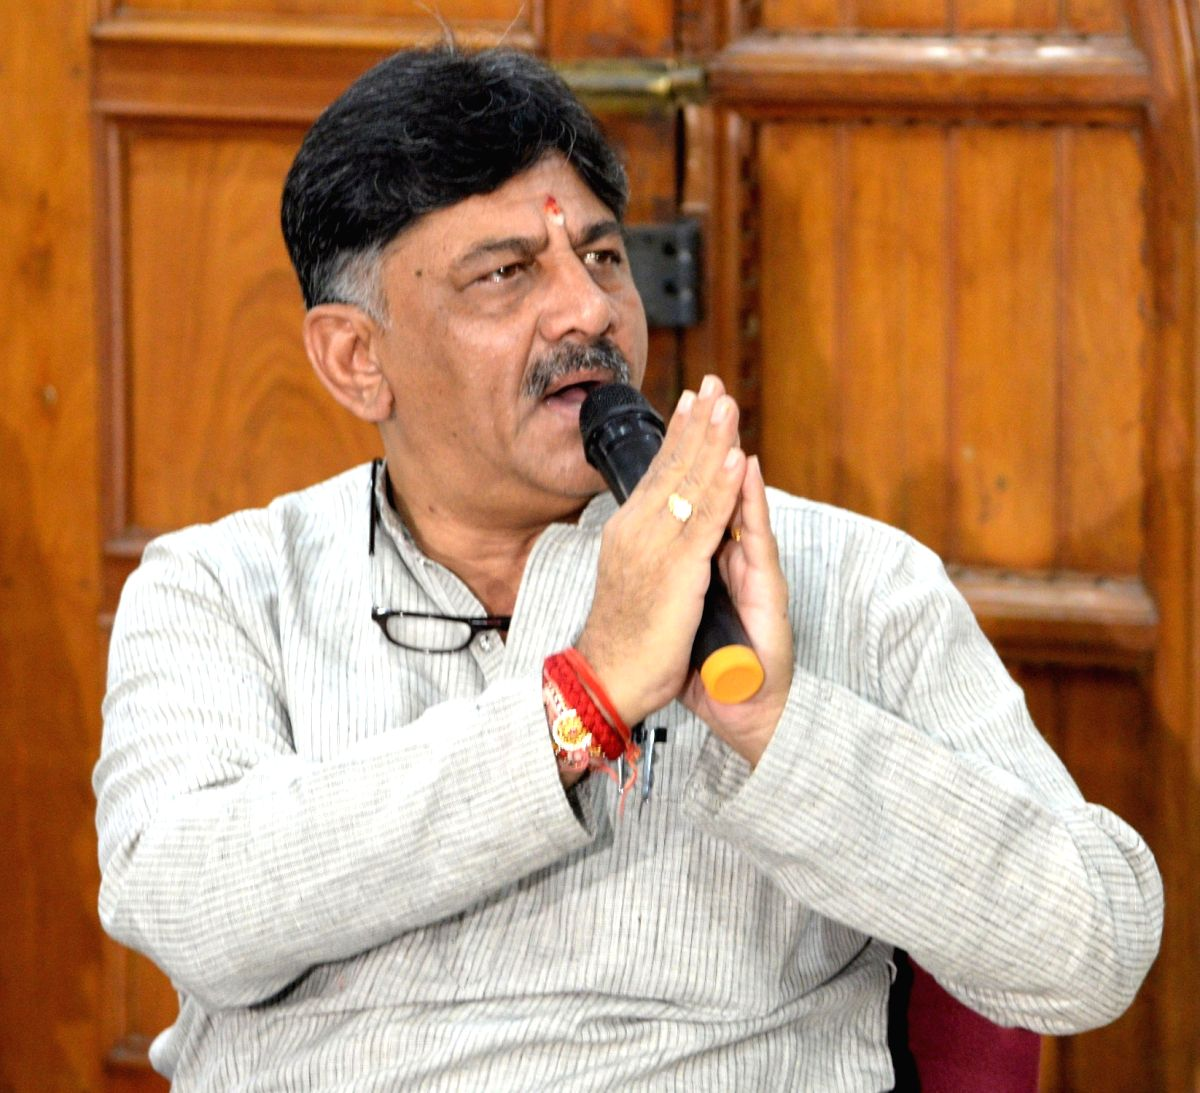 Bengaluru: Congress leader D.K. Shivakumar addresses a press conference at his residence in Bengaluru on Aug 30, 2019.